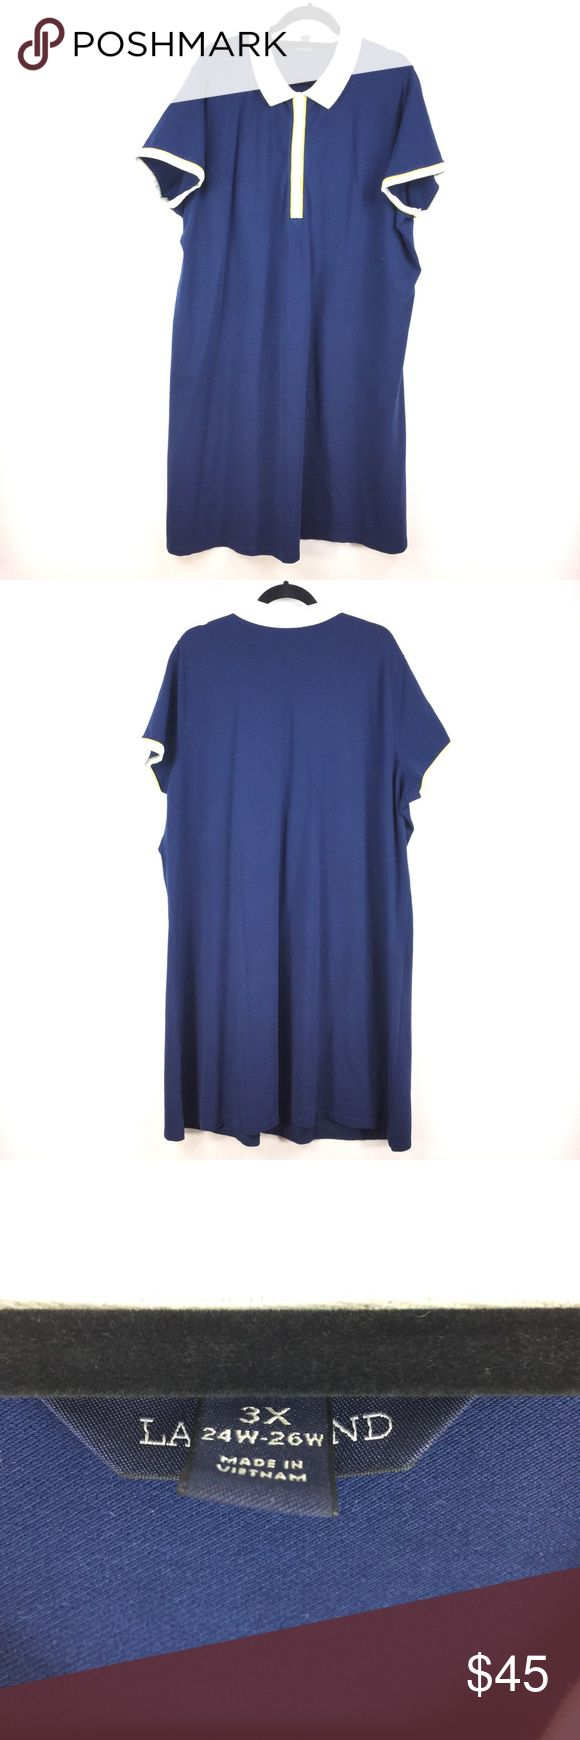 "Lands' End Polo Shift Dress Sz 3X Navy & white 914 Lands' End Polo Shift Dress Women's Plus Sz 3X Navy Blue White Short Sleeve 914  Measurements: Bust:  27"" Flat Across Waist:  27"" Flat Across Length:  43""  Long  In good preowned condition with no known flaws and light overall wear. Lands' End Dresses"